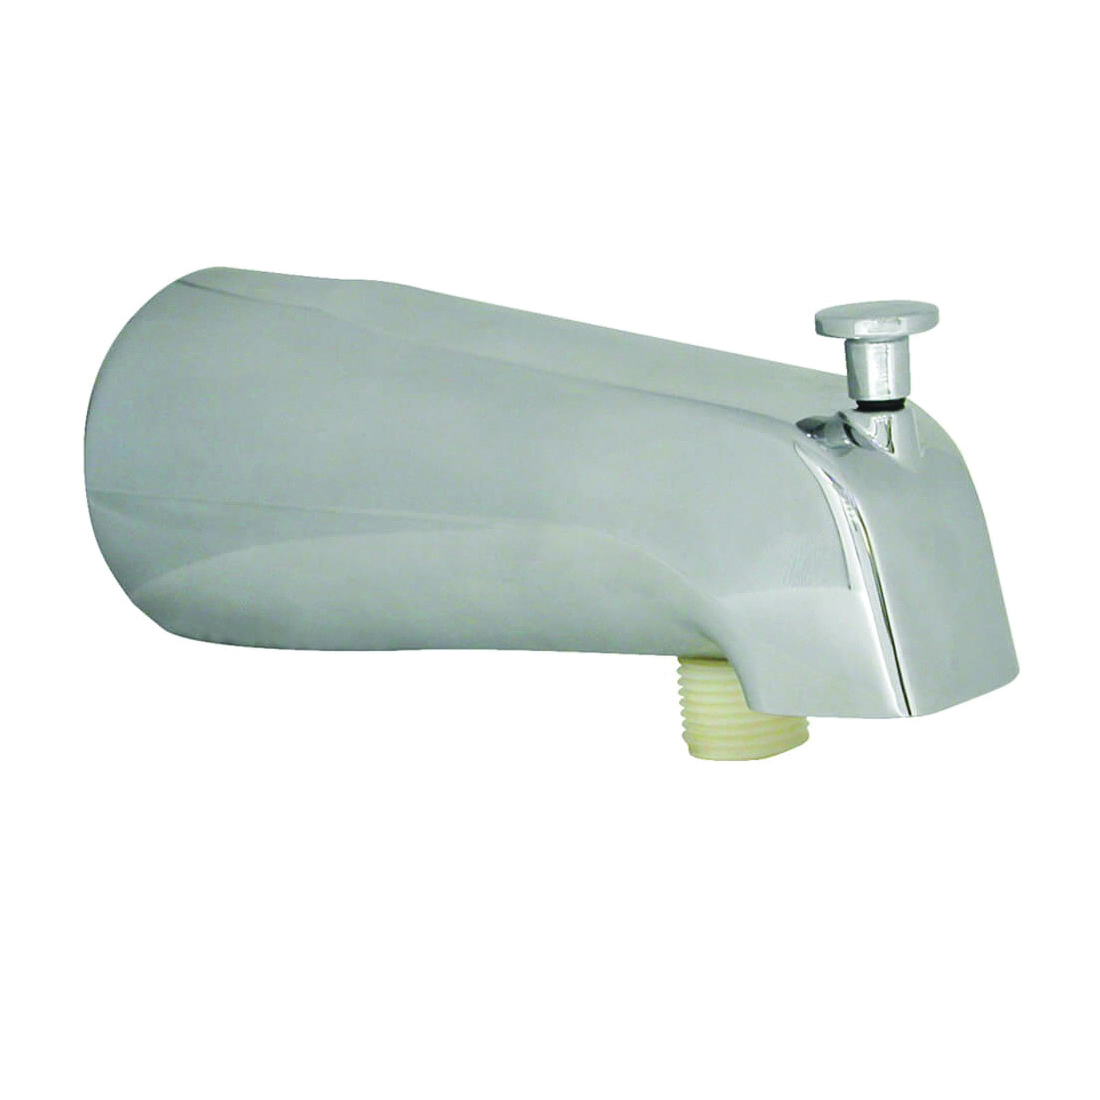 Picture of Danco 89266 Tub Spout, Metal, Chrome, For: 3/4 in and 1/2 in Threads, 1/2 in Copper Slip and 1/2 in Thread in Nose